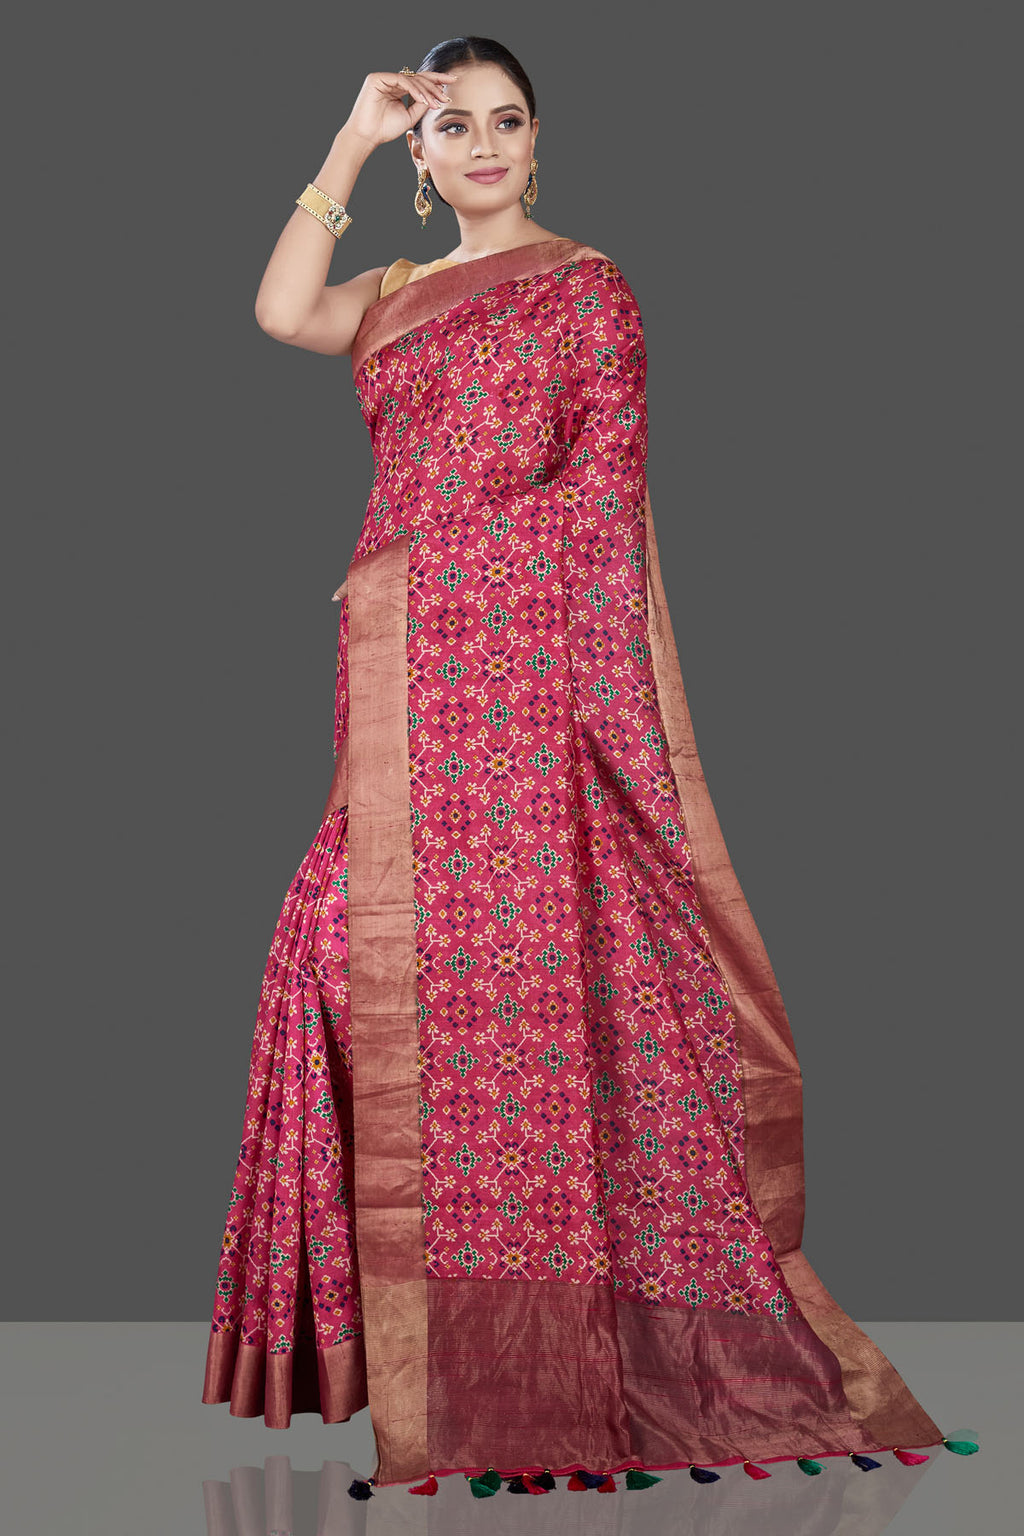 Buy beautiful pink bandhej Patola tussar silk sari online in USA with antique zari border. Be the talk of the occasion in exquisite designer sarees, pure silk sarees, tussar saris, embroidered sarees, handloom sarees from Pure Elegance Indian fashion store in USA.-full view